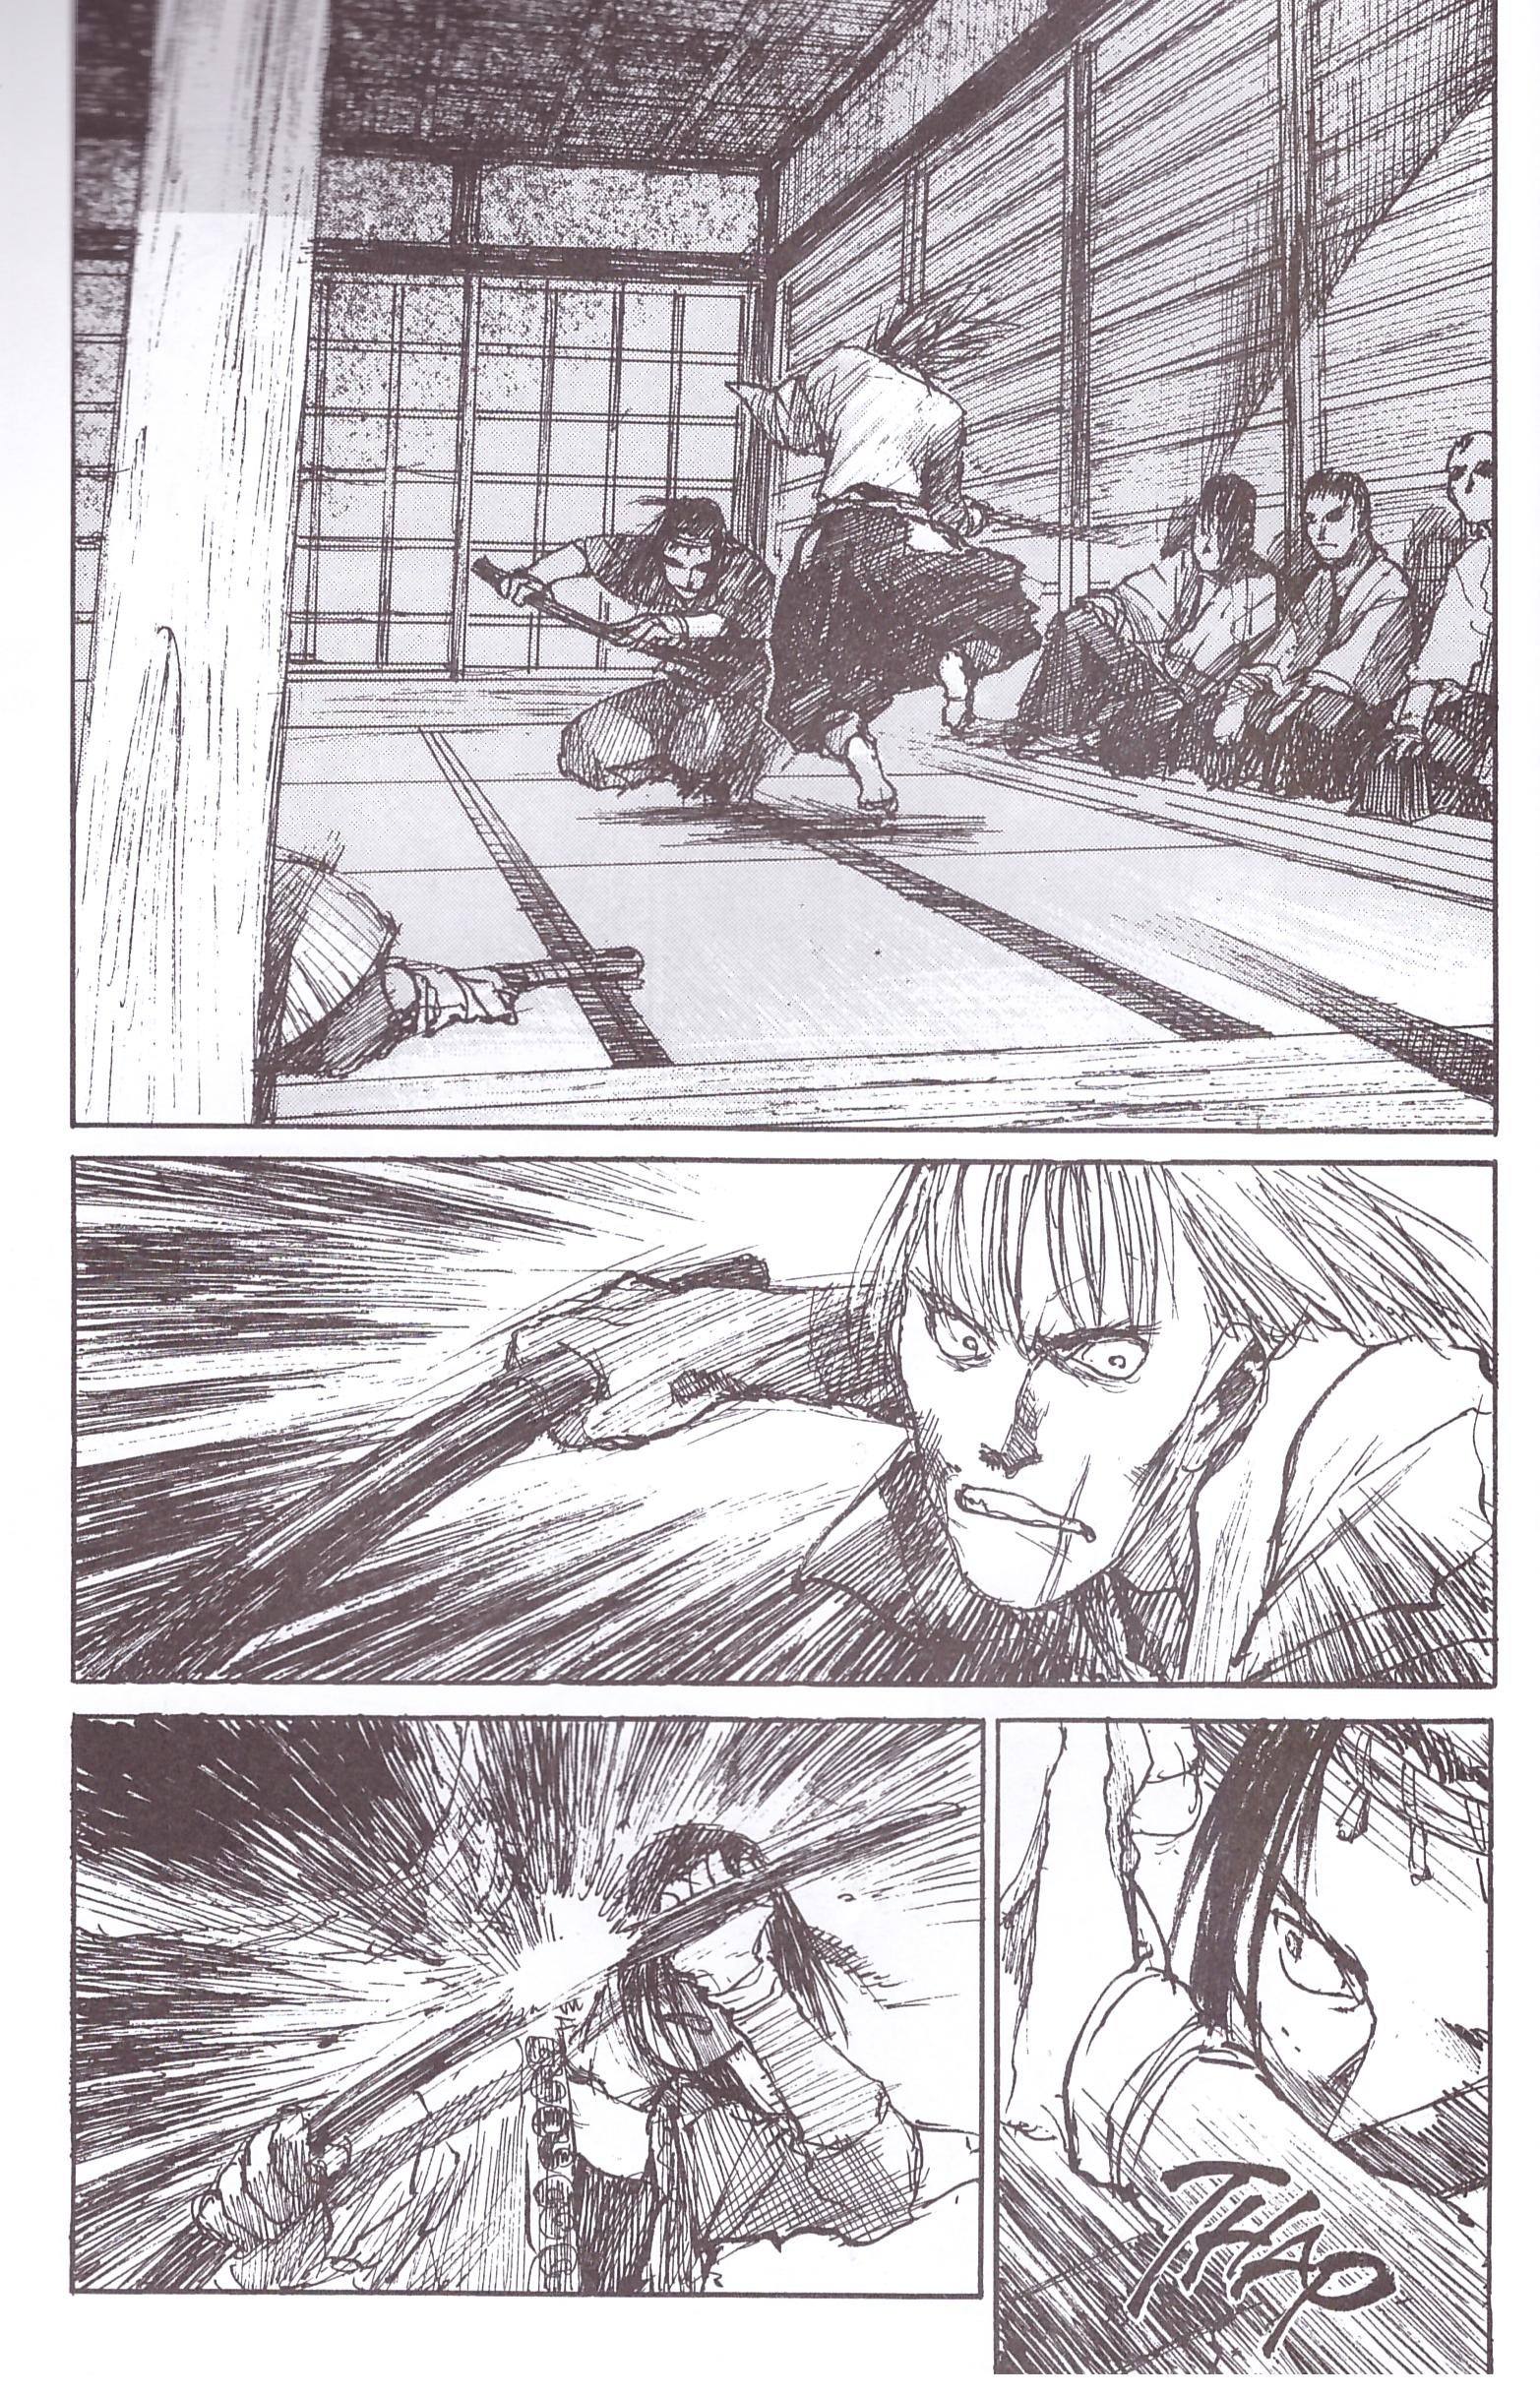 Blade of the Immortal Omnibus 4 review